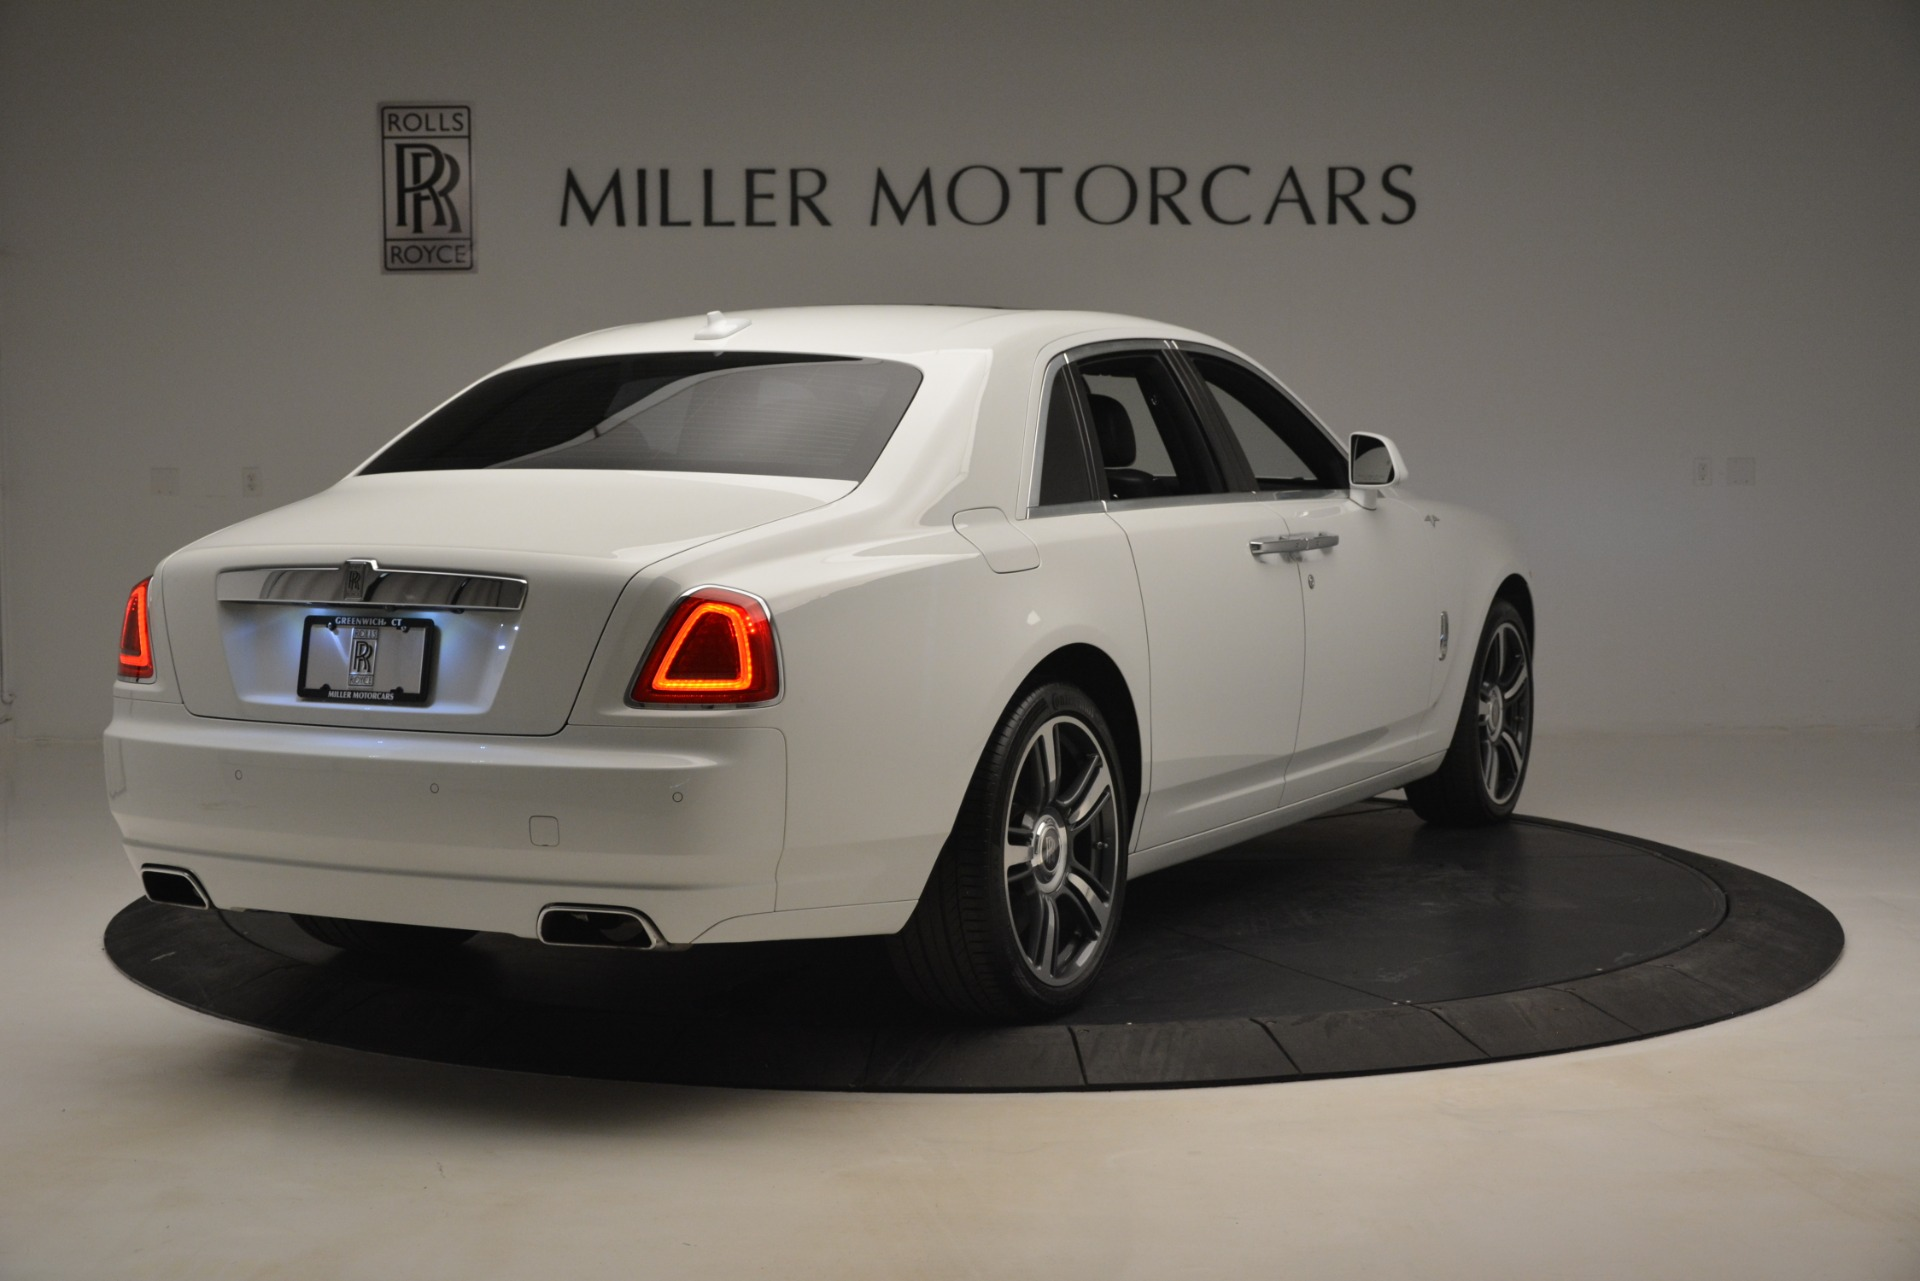 Used 2014 Rolls-Royce Ghost V-Spec For Sale In Greenwich, CT 2989_p8